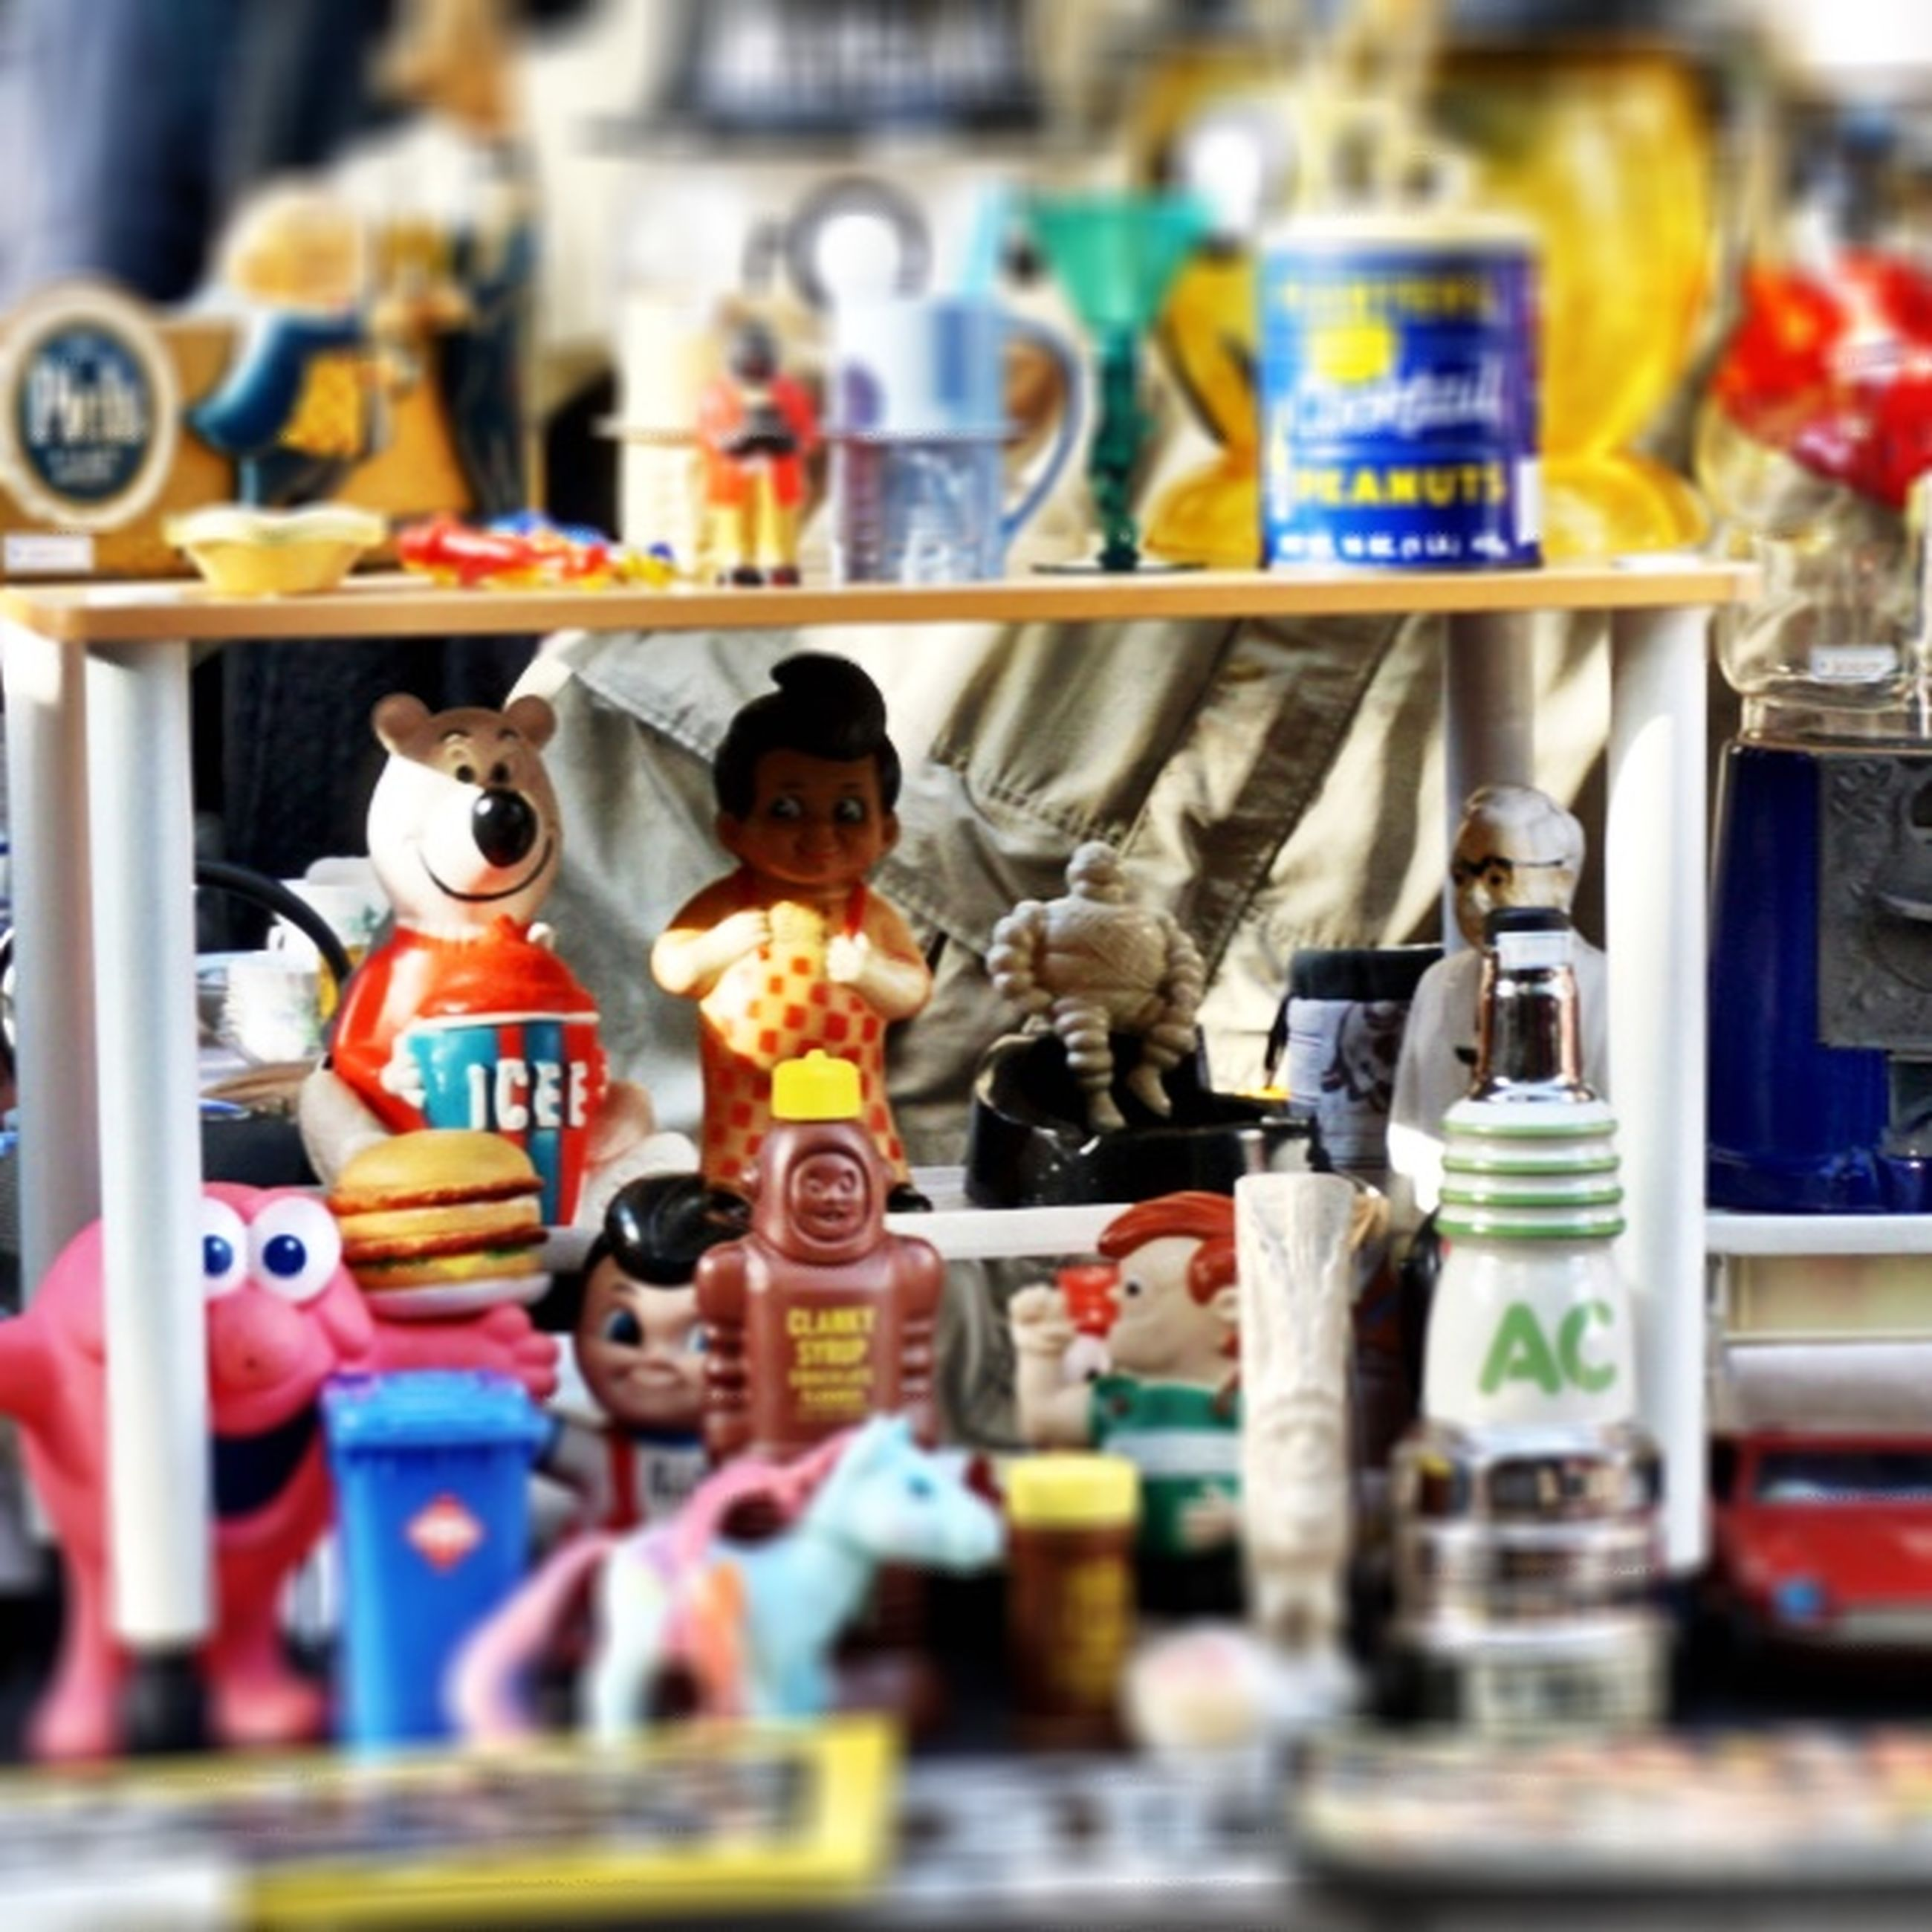 for sale, retail, indoors, store, variation, choice, shop, selective focus, focus on foreground, display, human representation, collection, large group of objects, market stall, sale, market, shelf, retail display, abundance, arrangement